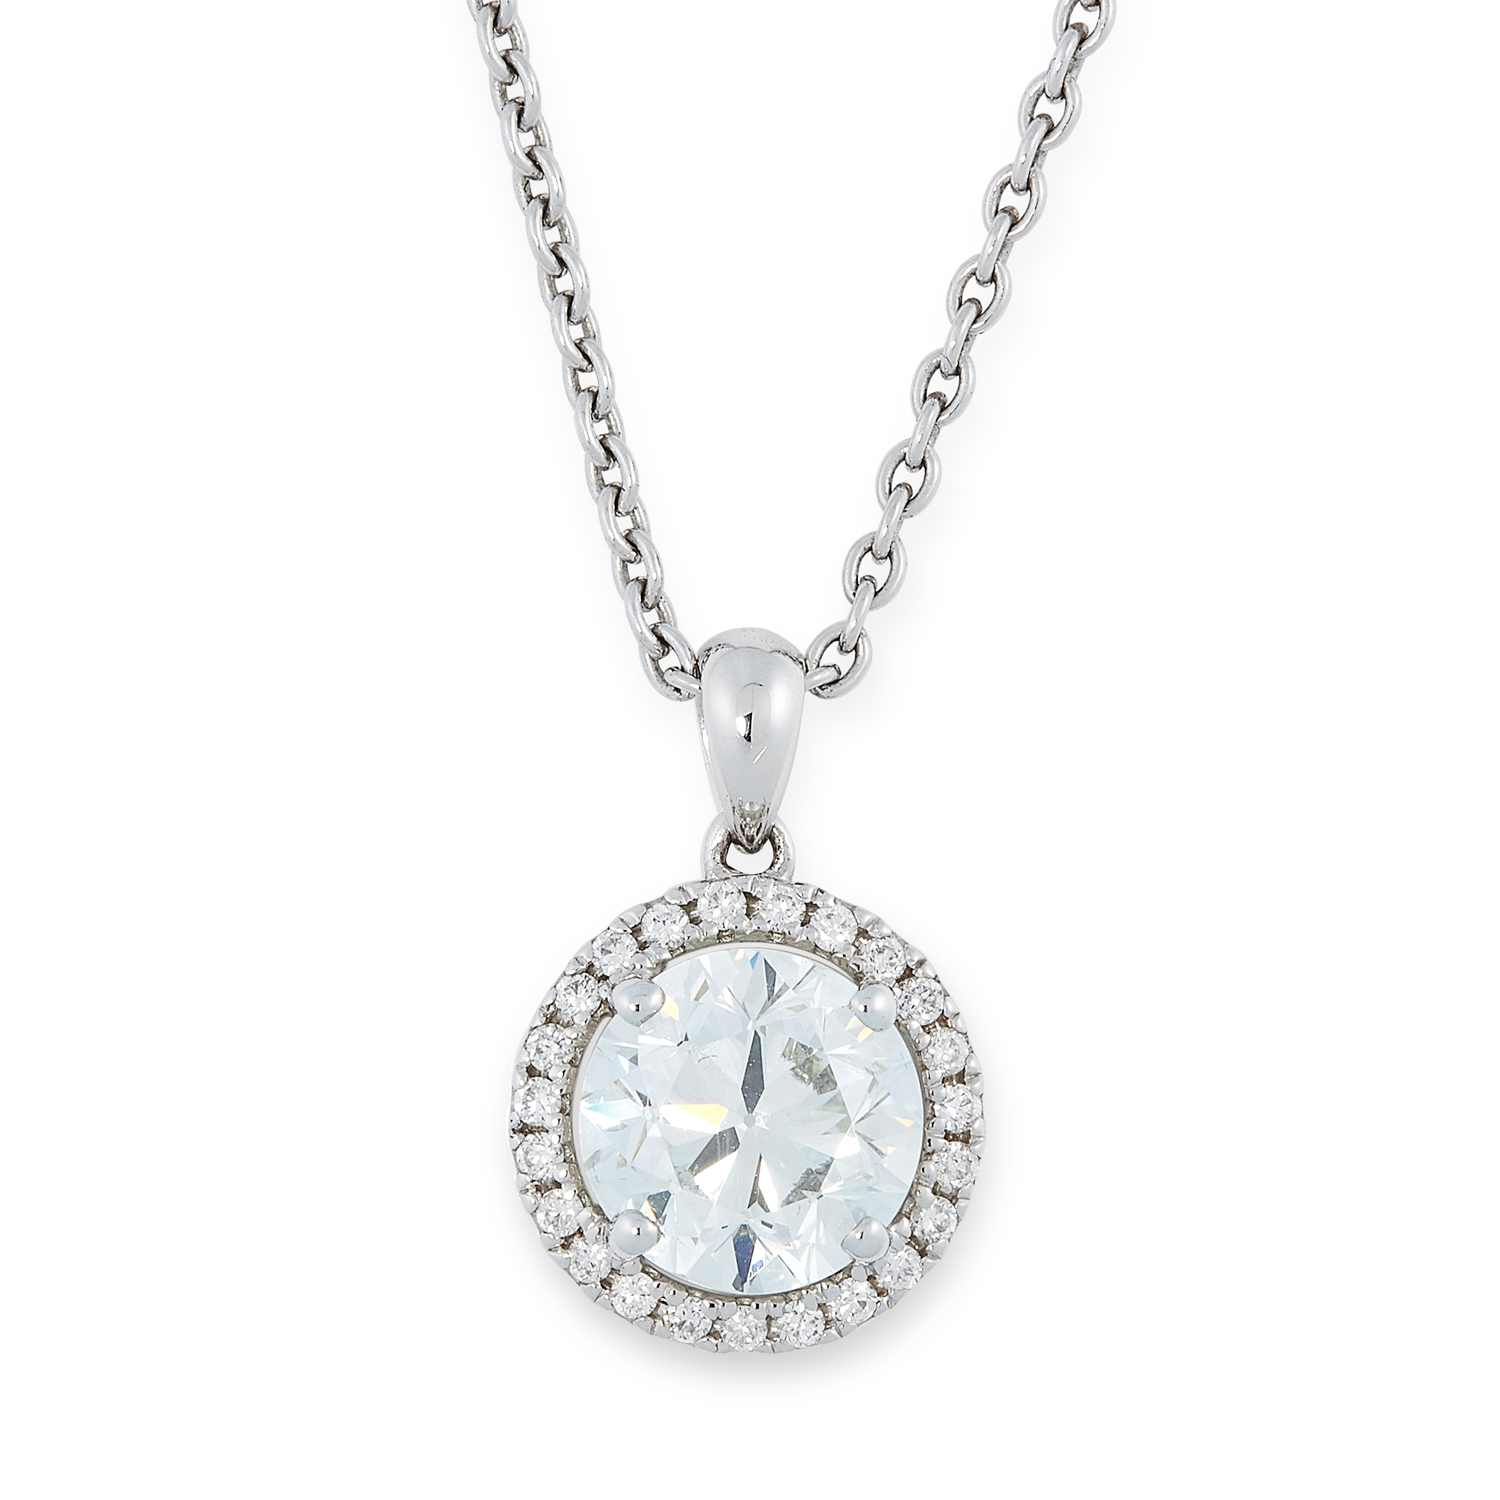 A 2.00 CARAT DIAMOND PENDANT AND CHAIN set with a central round brilliant cut diamond of 2.00